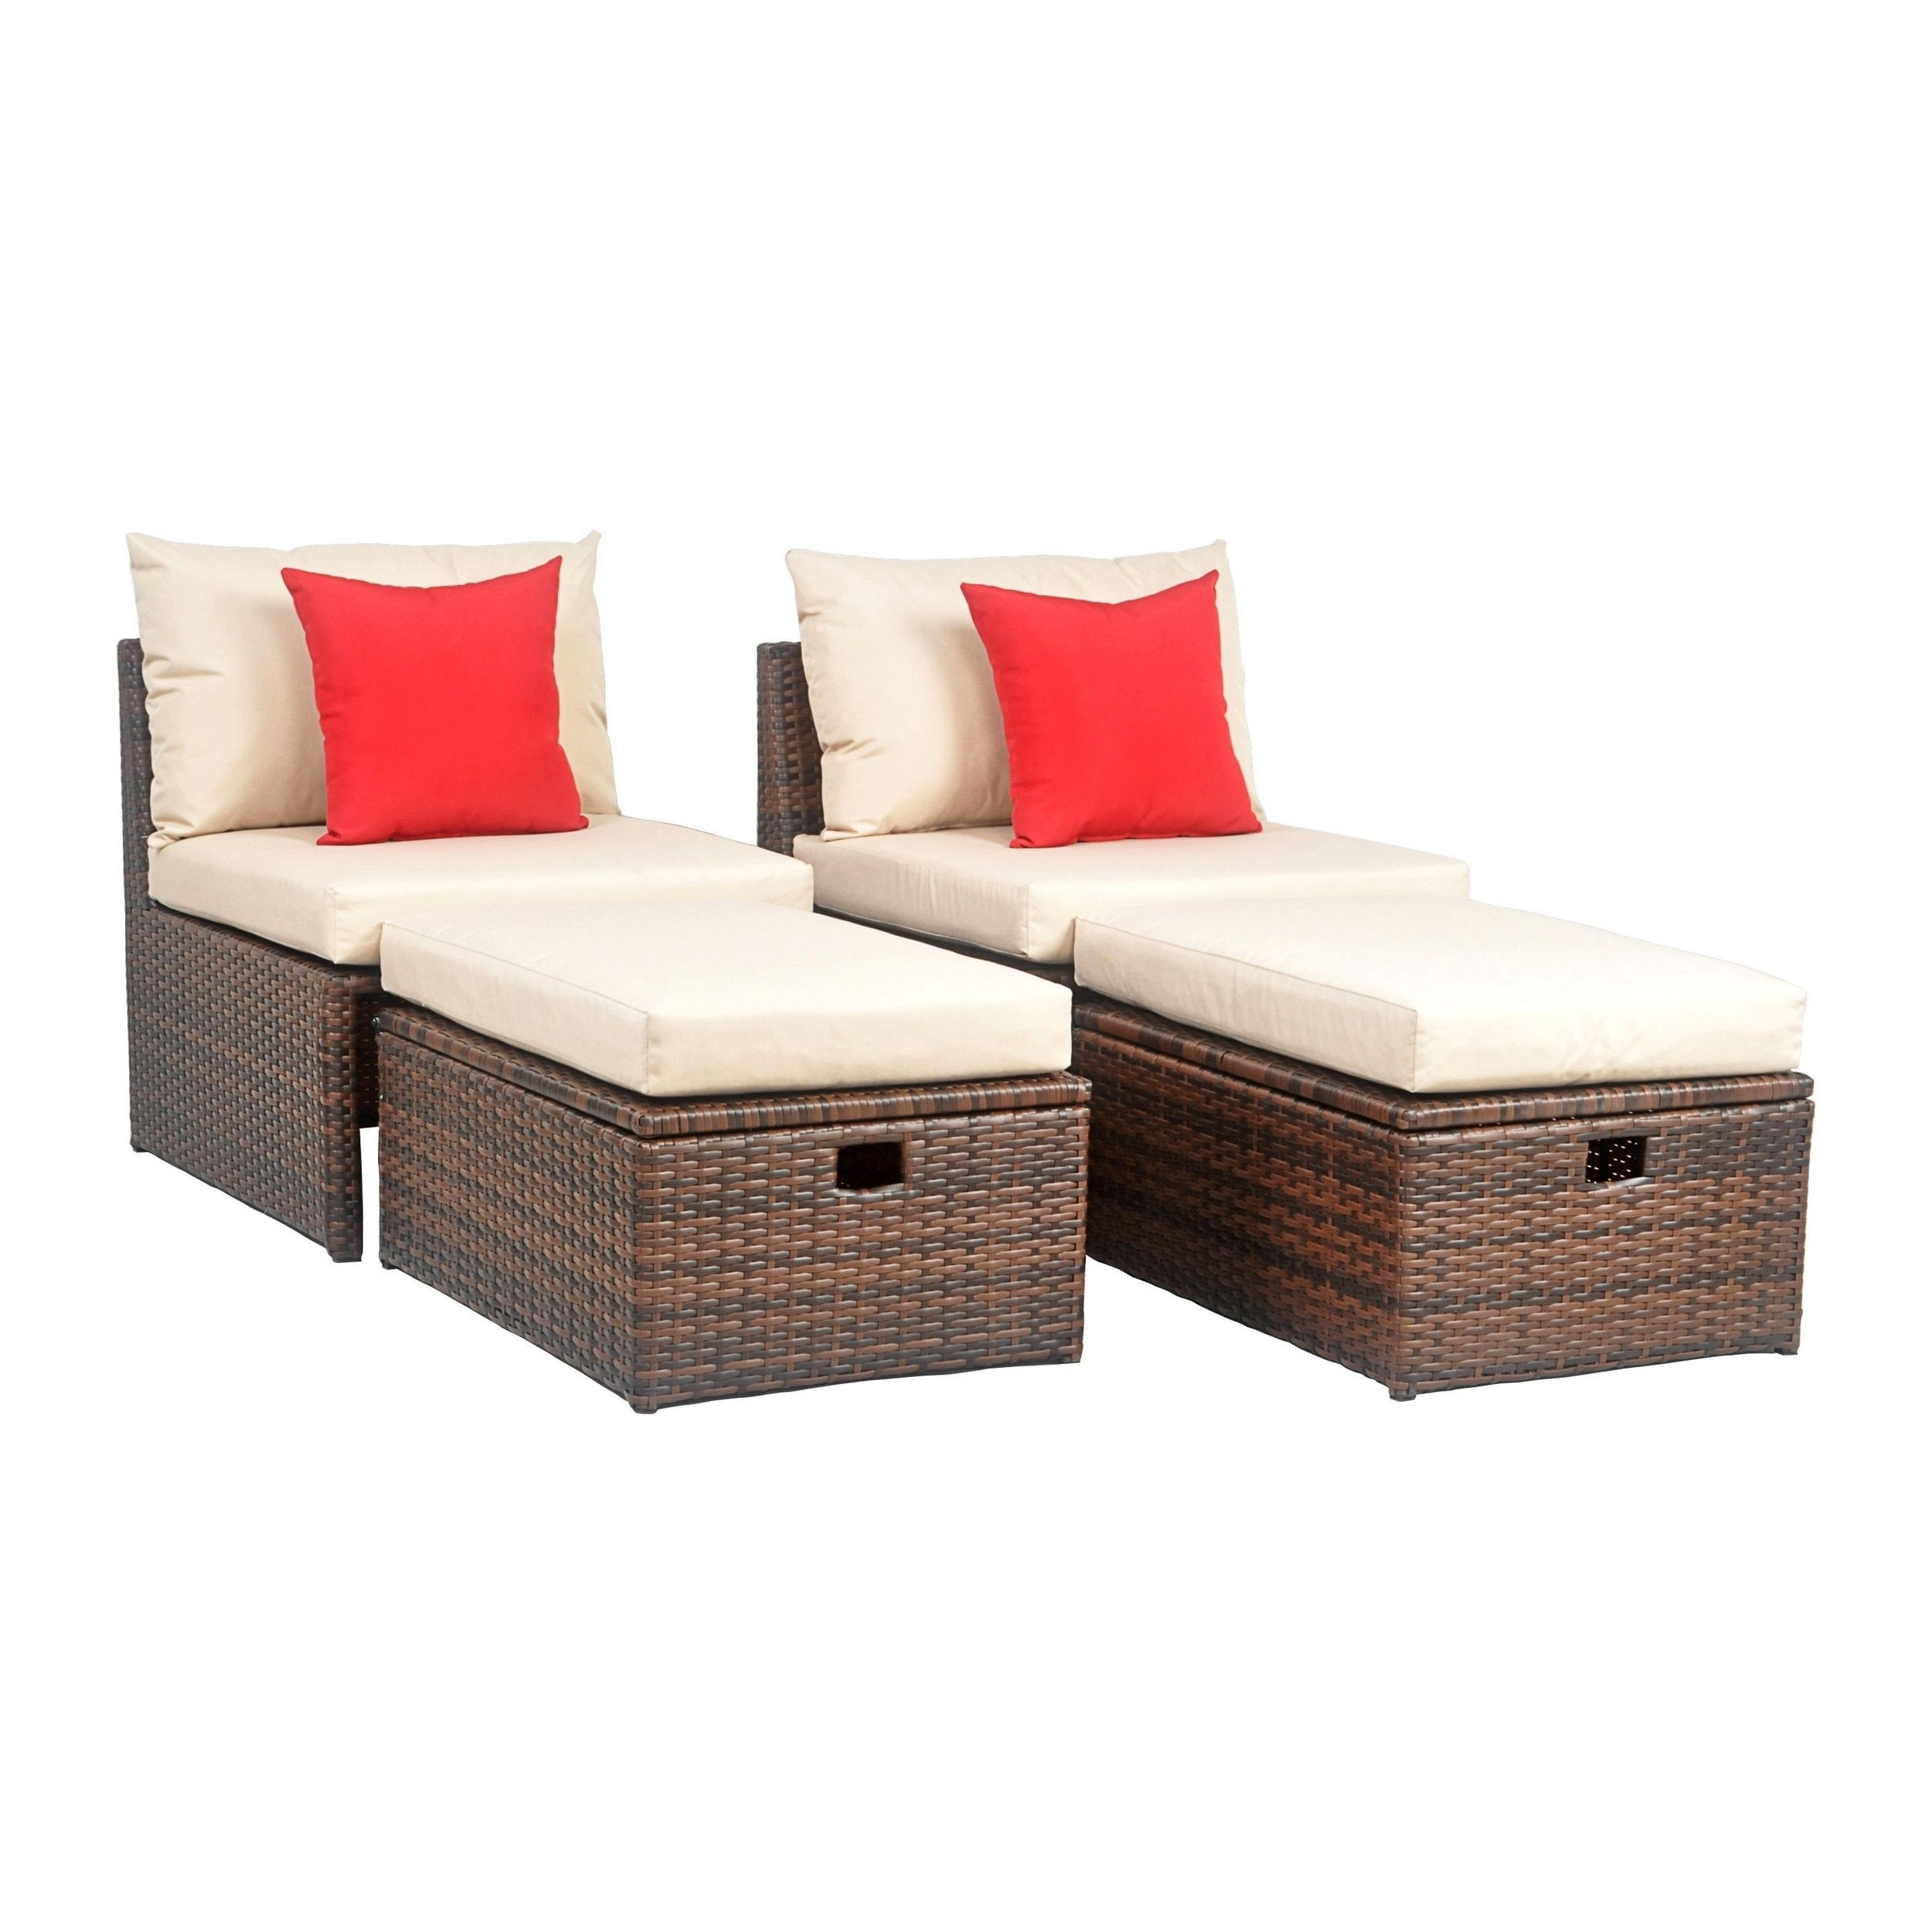 Cool Safavieh Telford Rattan Brown Tan Red Outdoor Sette And Machost Co Dining Chair Design Ideas Machostcouk